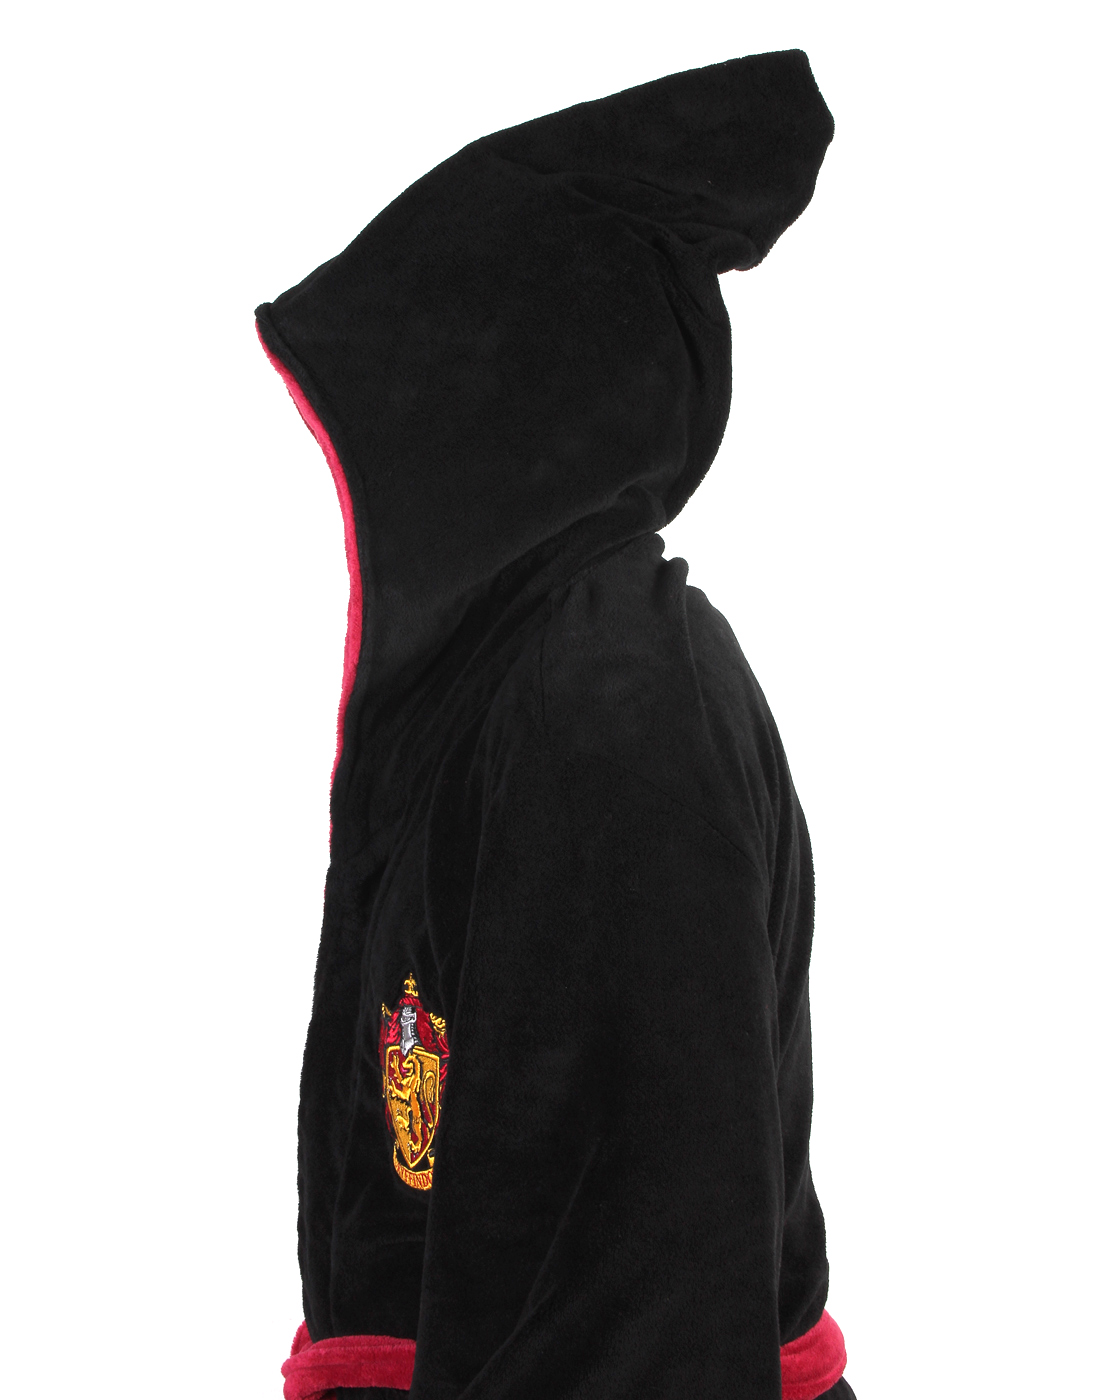 Harry-Potter-ALL-HOUSES-Adult-Fleece-Hooded-Bathrobe-One-Size miniature 6